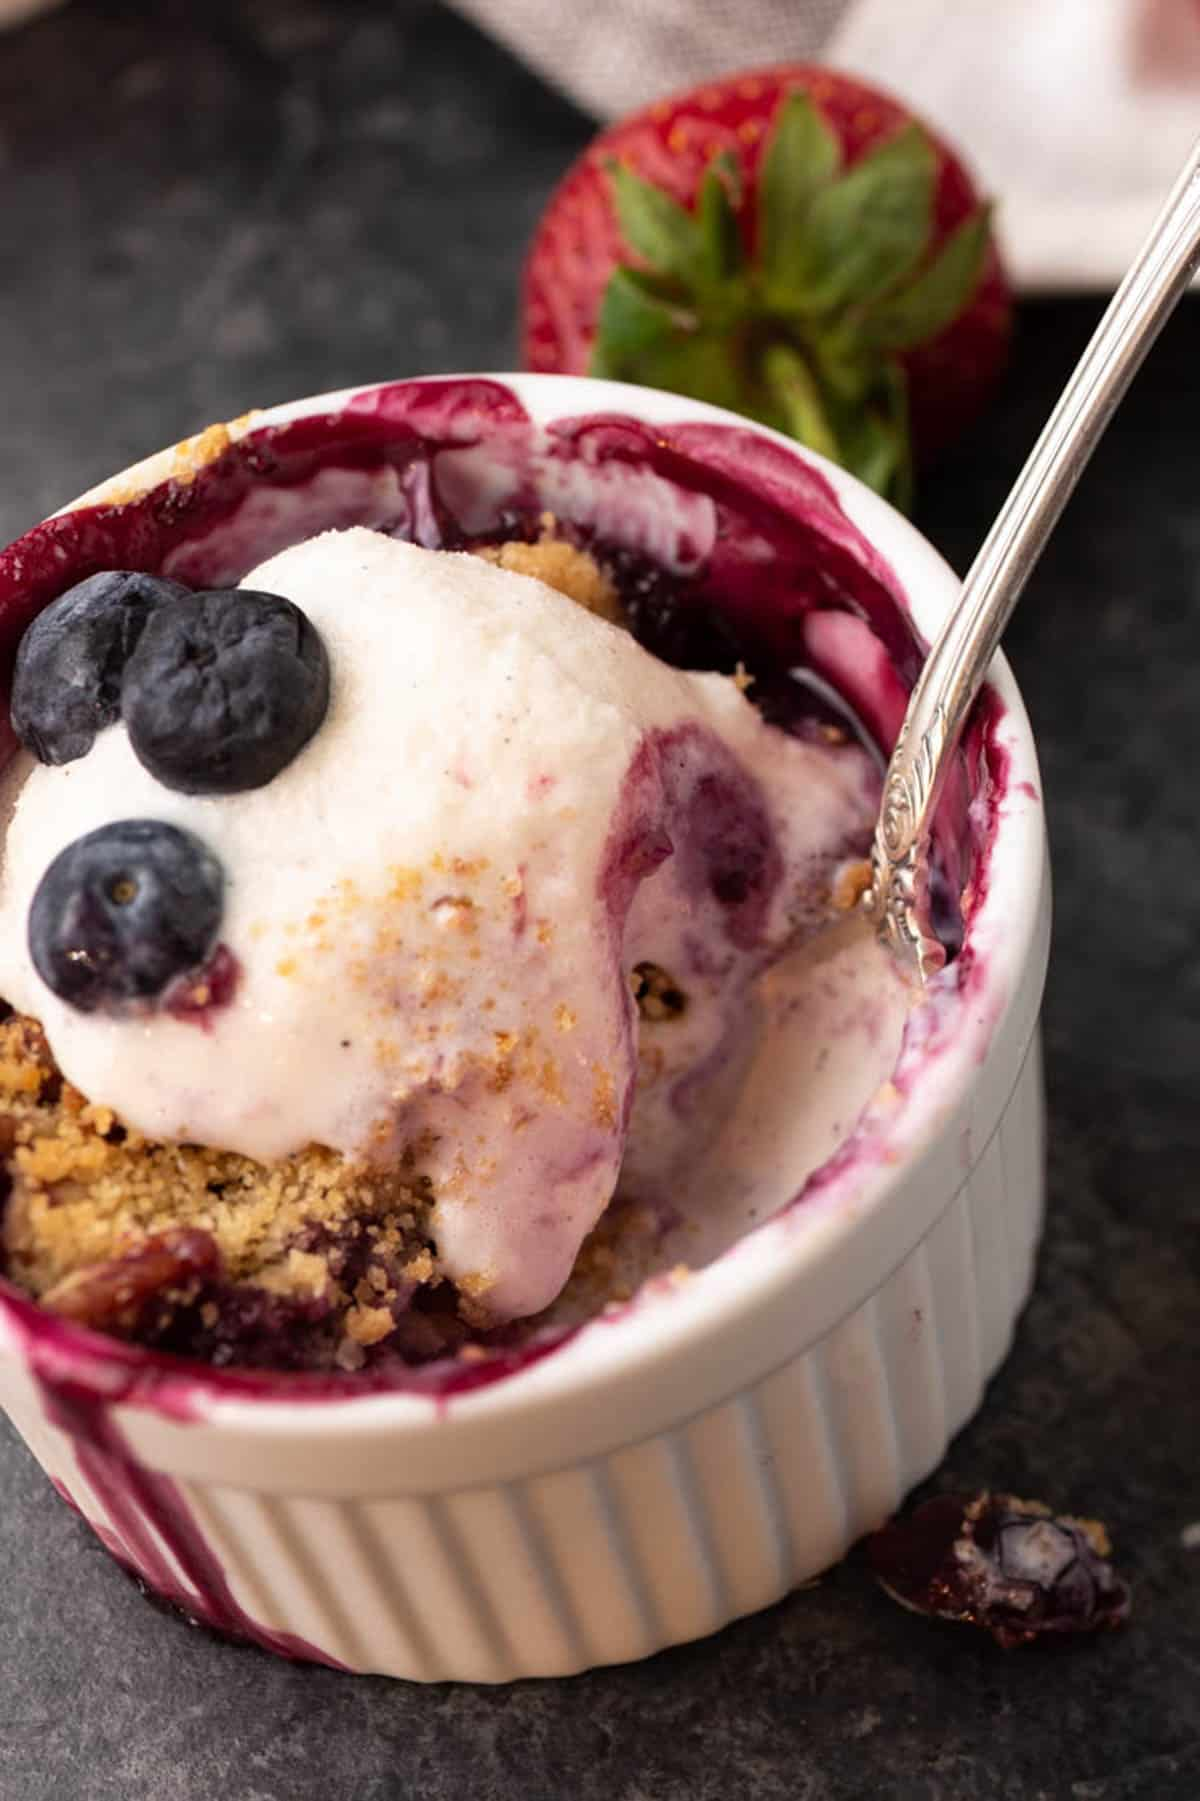 Ice cream topped berry and rhubarb crisp with a spoon